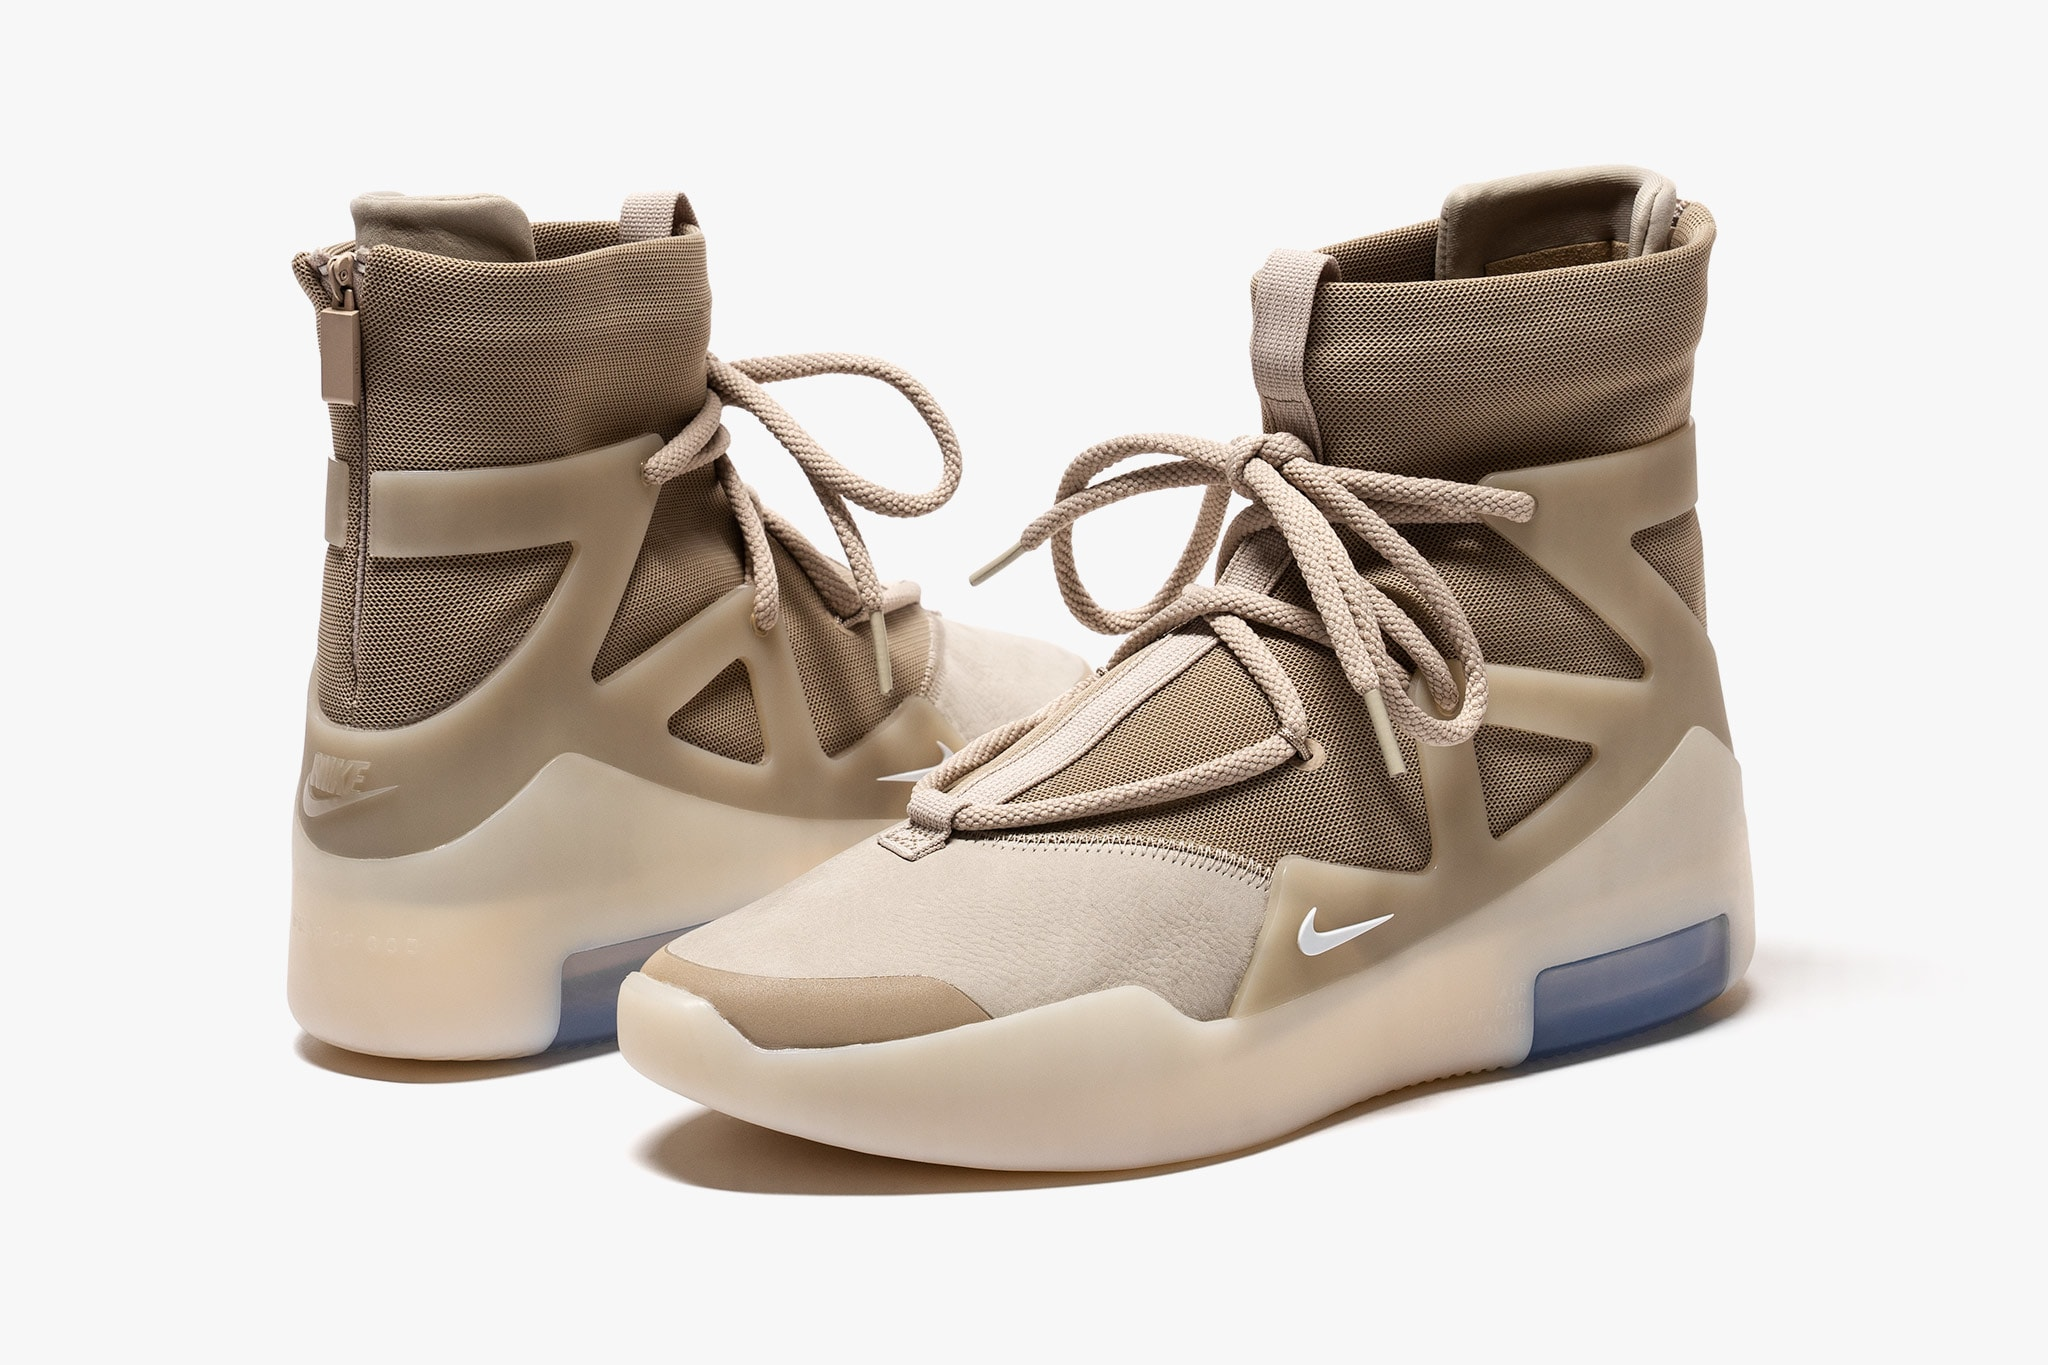 JERRY LORENZO FEAR OF GOD 1 FW19 HAVEN